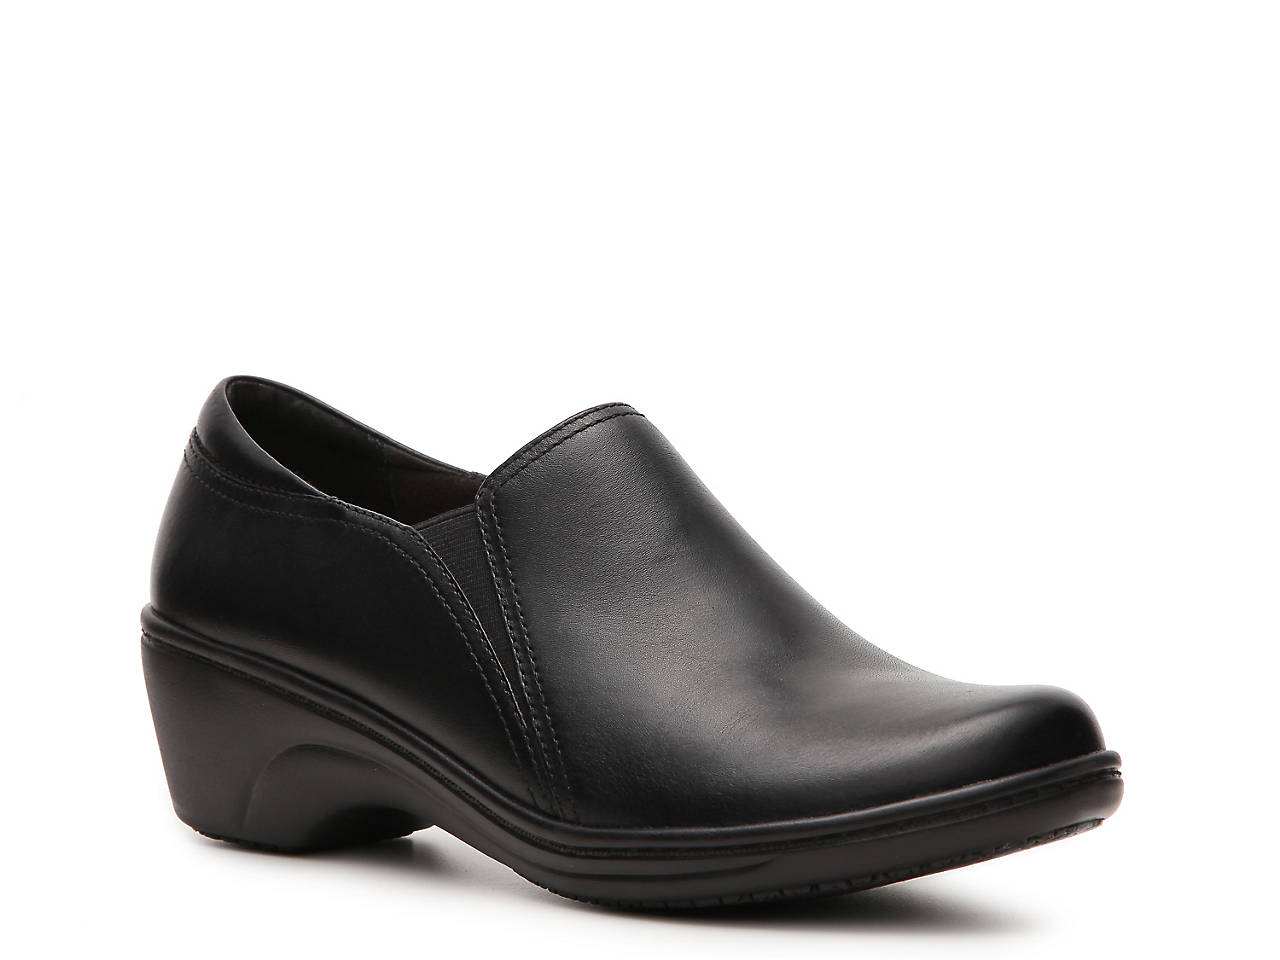 fa453b6478fd3 Clarks Grasp Chime Work Slip-On Women's Shoes | DSW